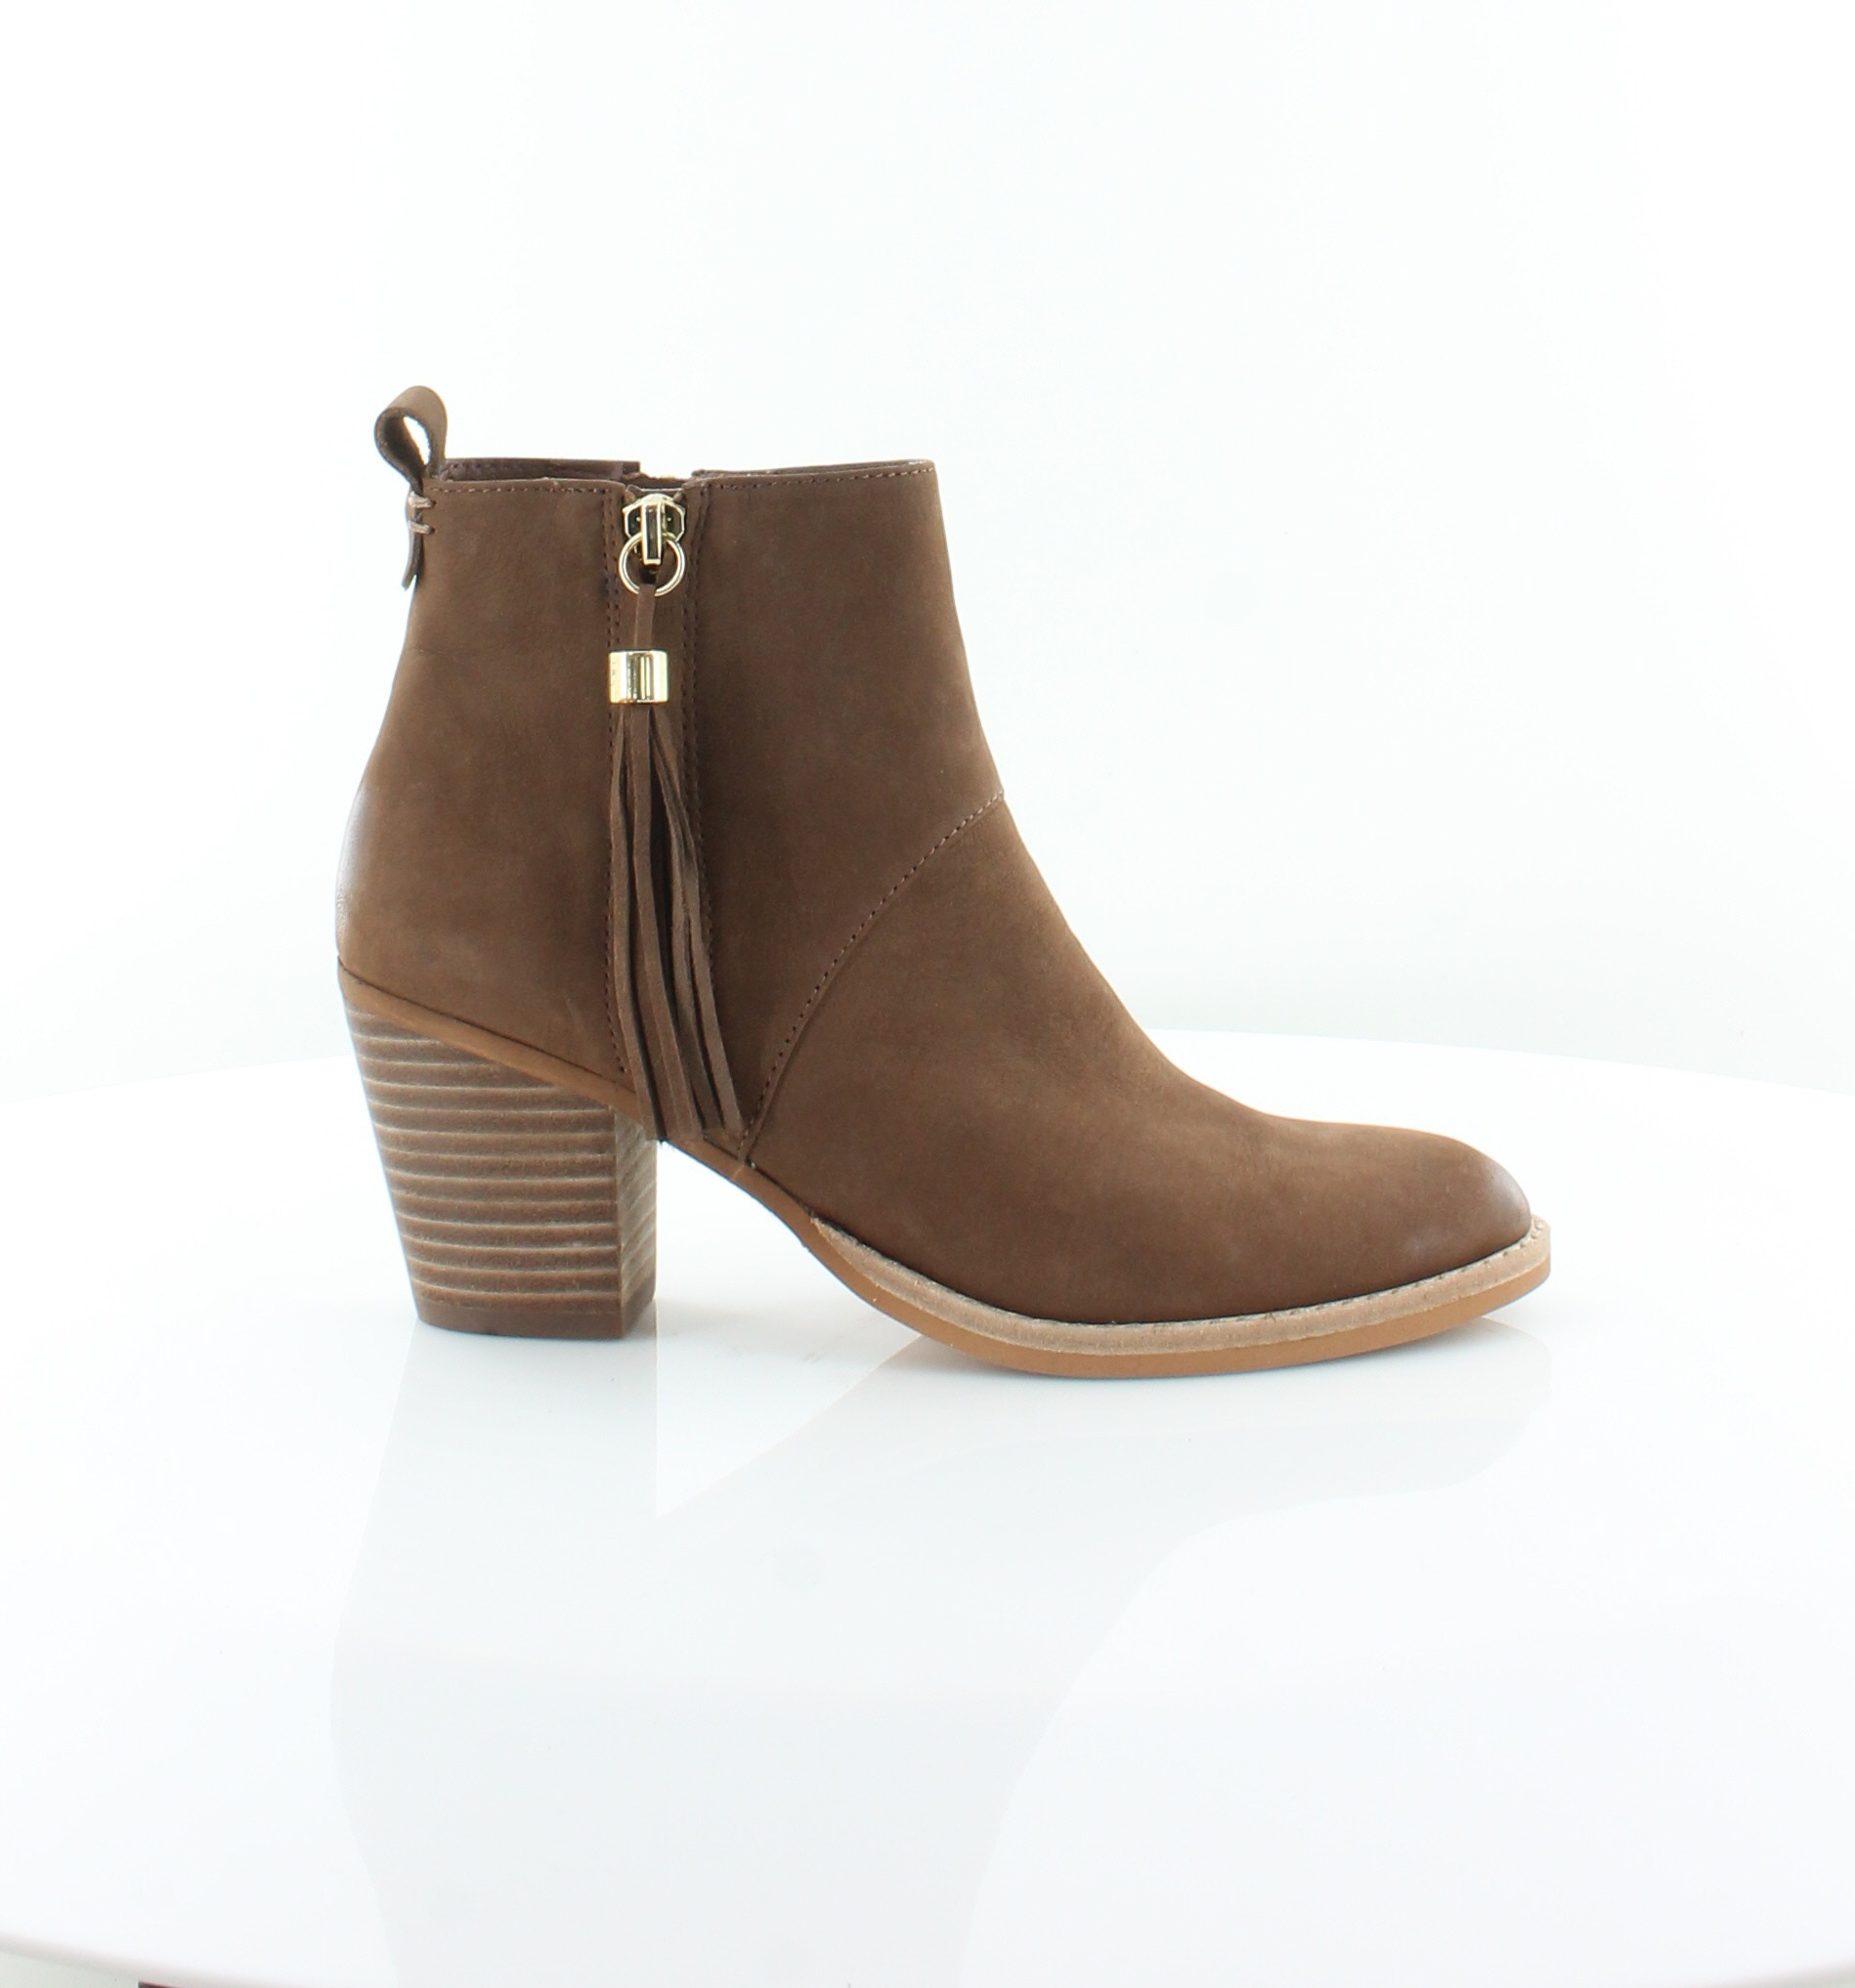 Image is loading Steven-by-Steve-Madden-Beti-Women-039-s-